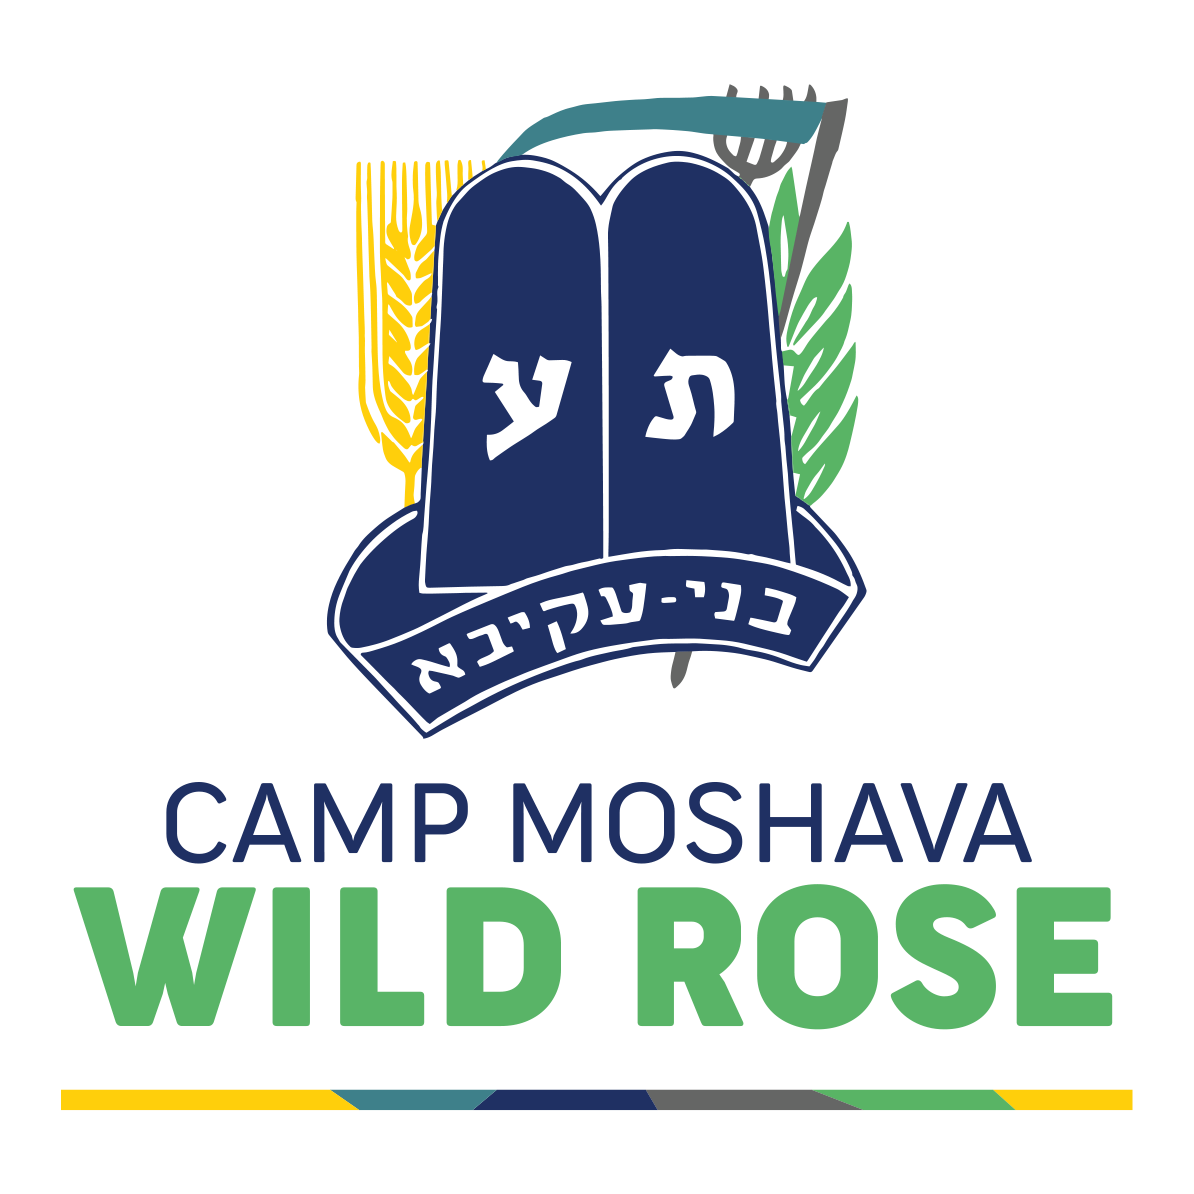 Camp Moshava of Wild Rose, WI